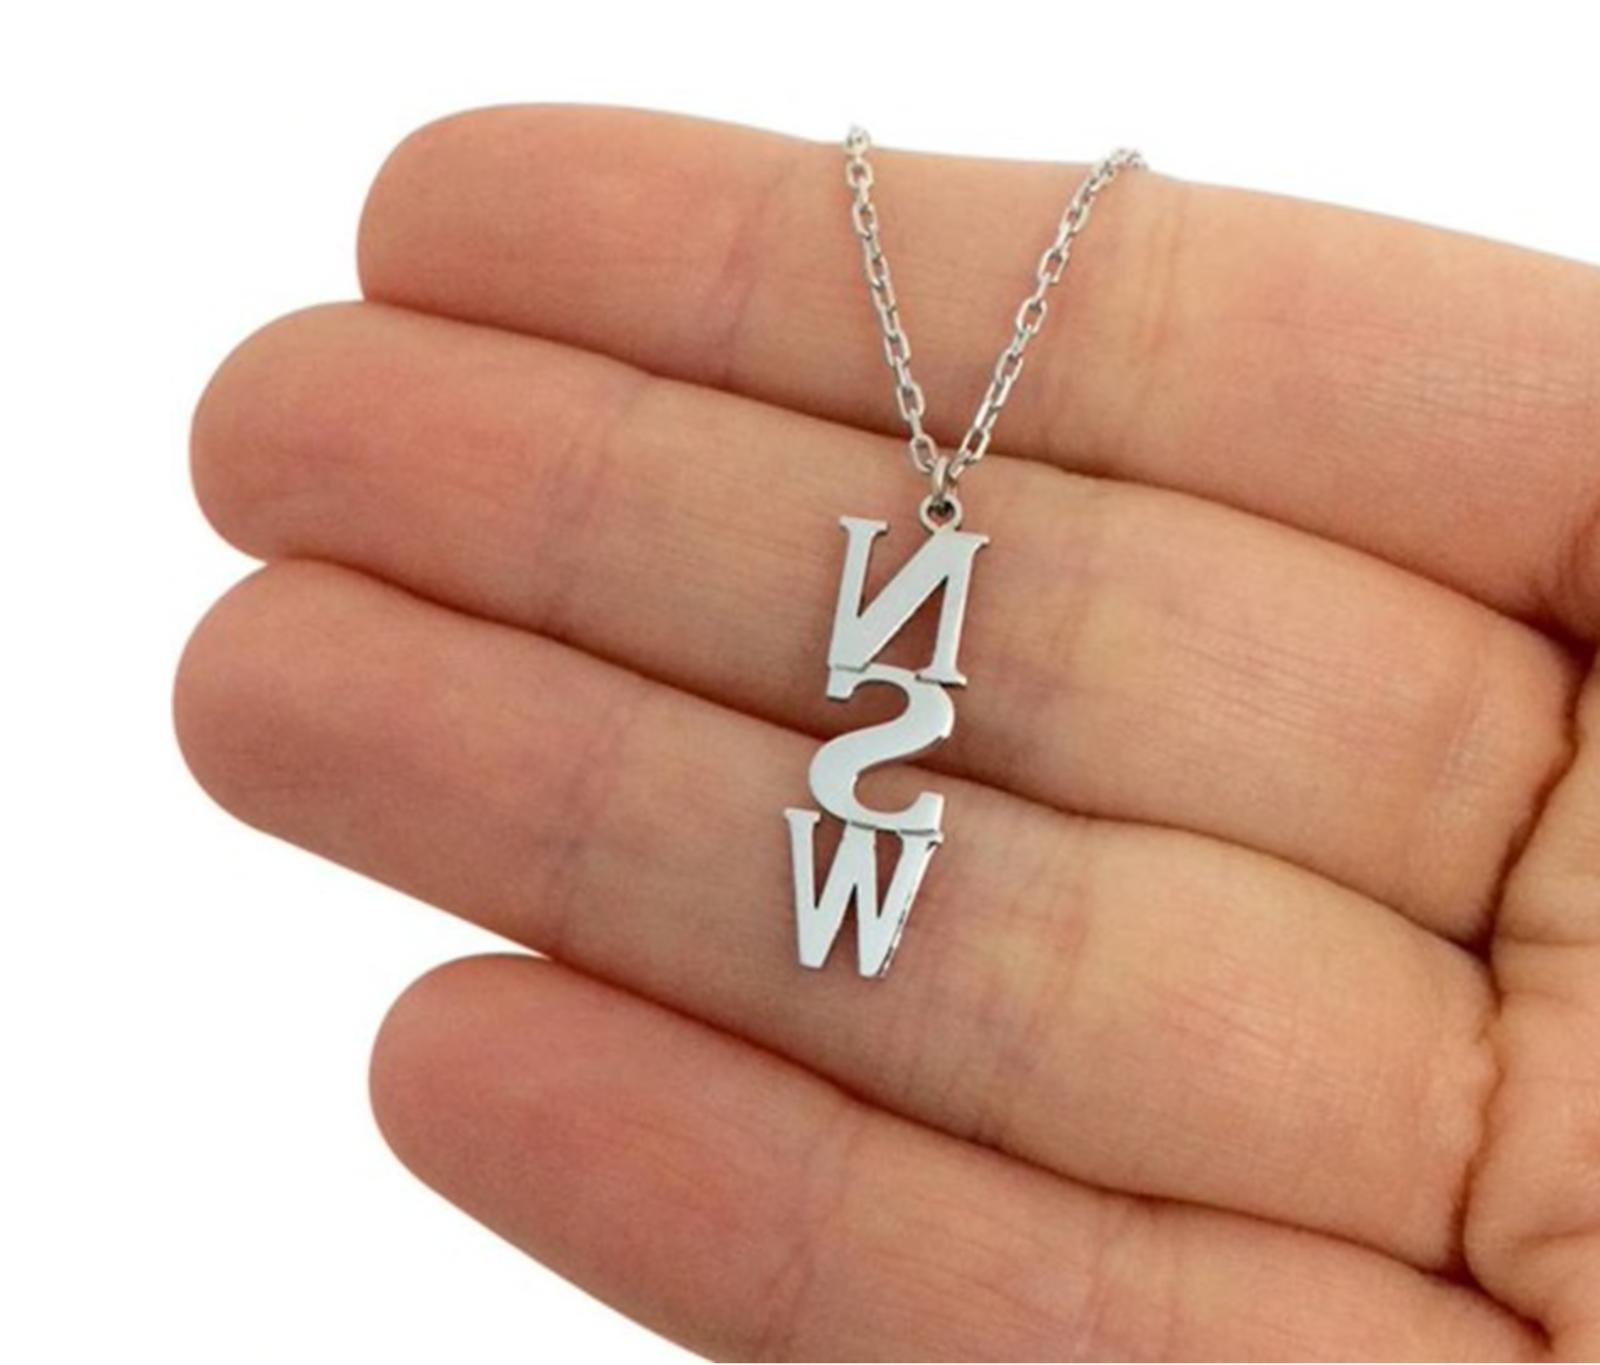 Personalized Name Necklace Custom Jewelry Women Chain